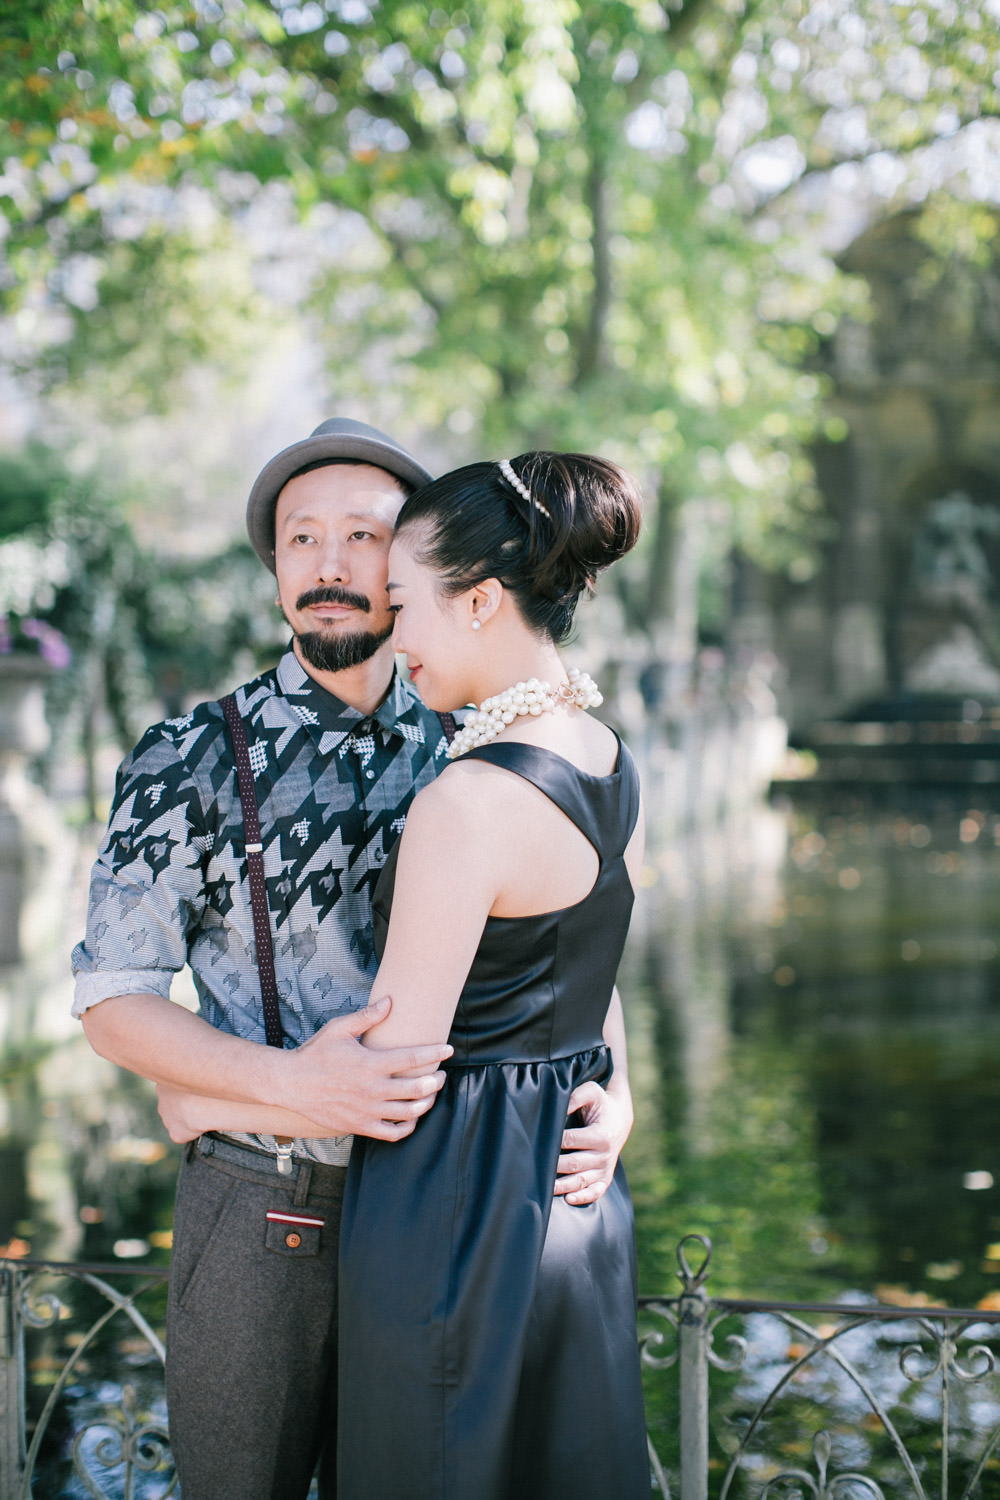 Pre wedding photography, couple shoot near fountain at Jardin du Luxembourg, Paris